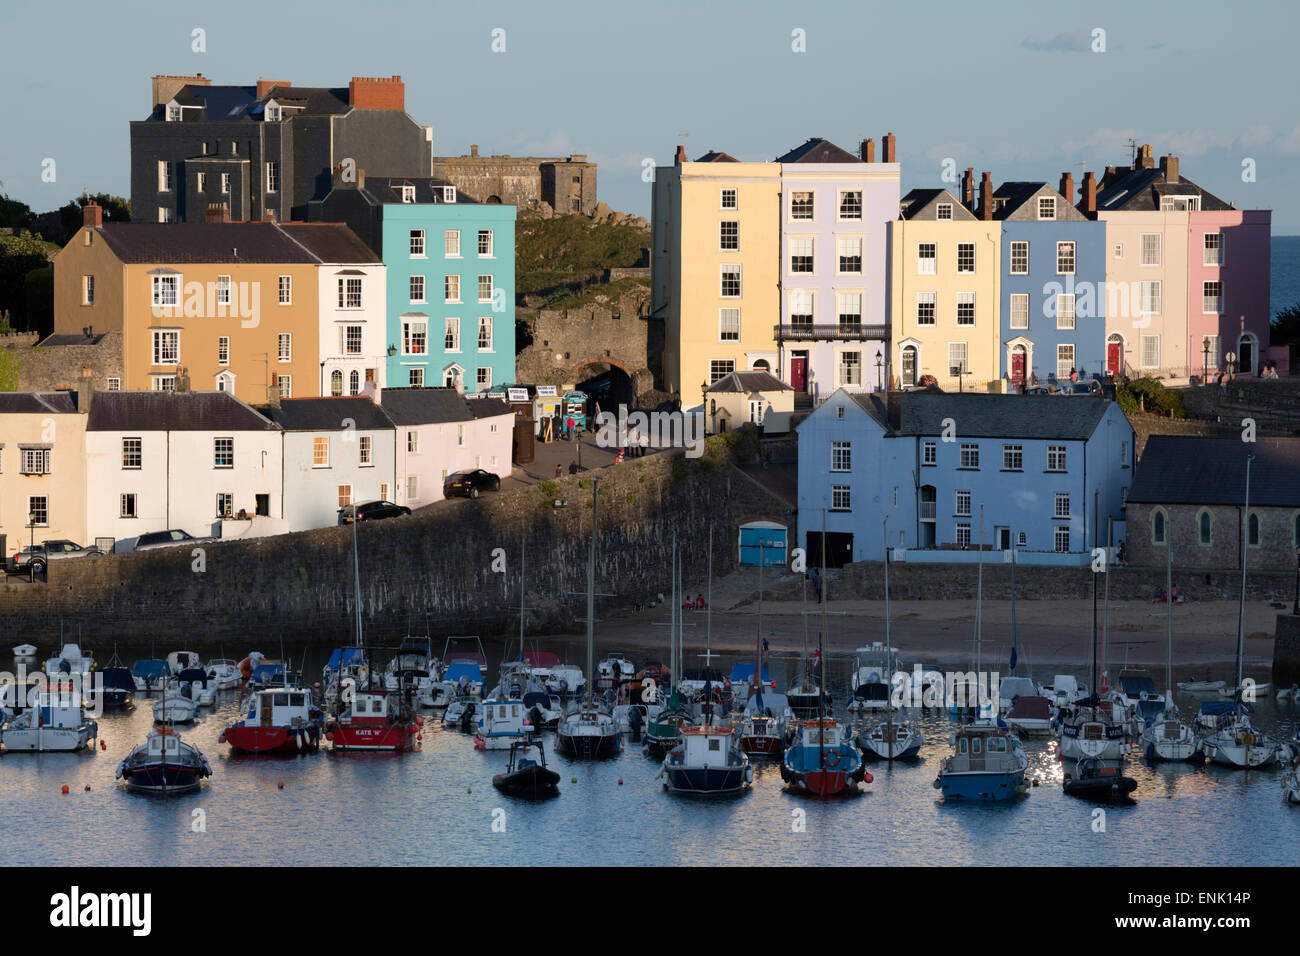 View over harbour, Tenby, Carmarthen Bay, Pembrokeshire, Wales, United Kingdom, Europe - Stock Image